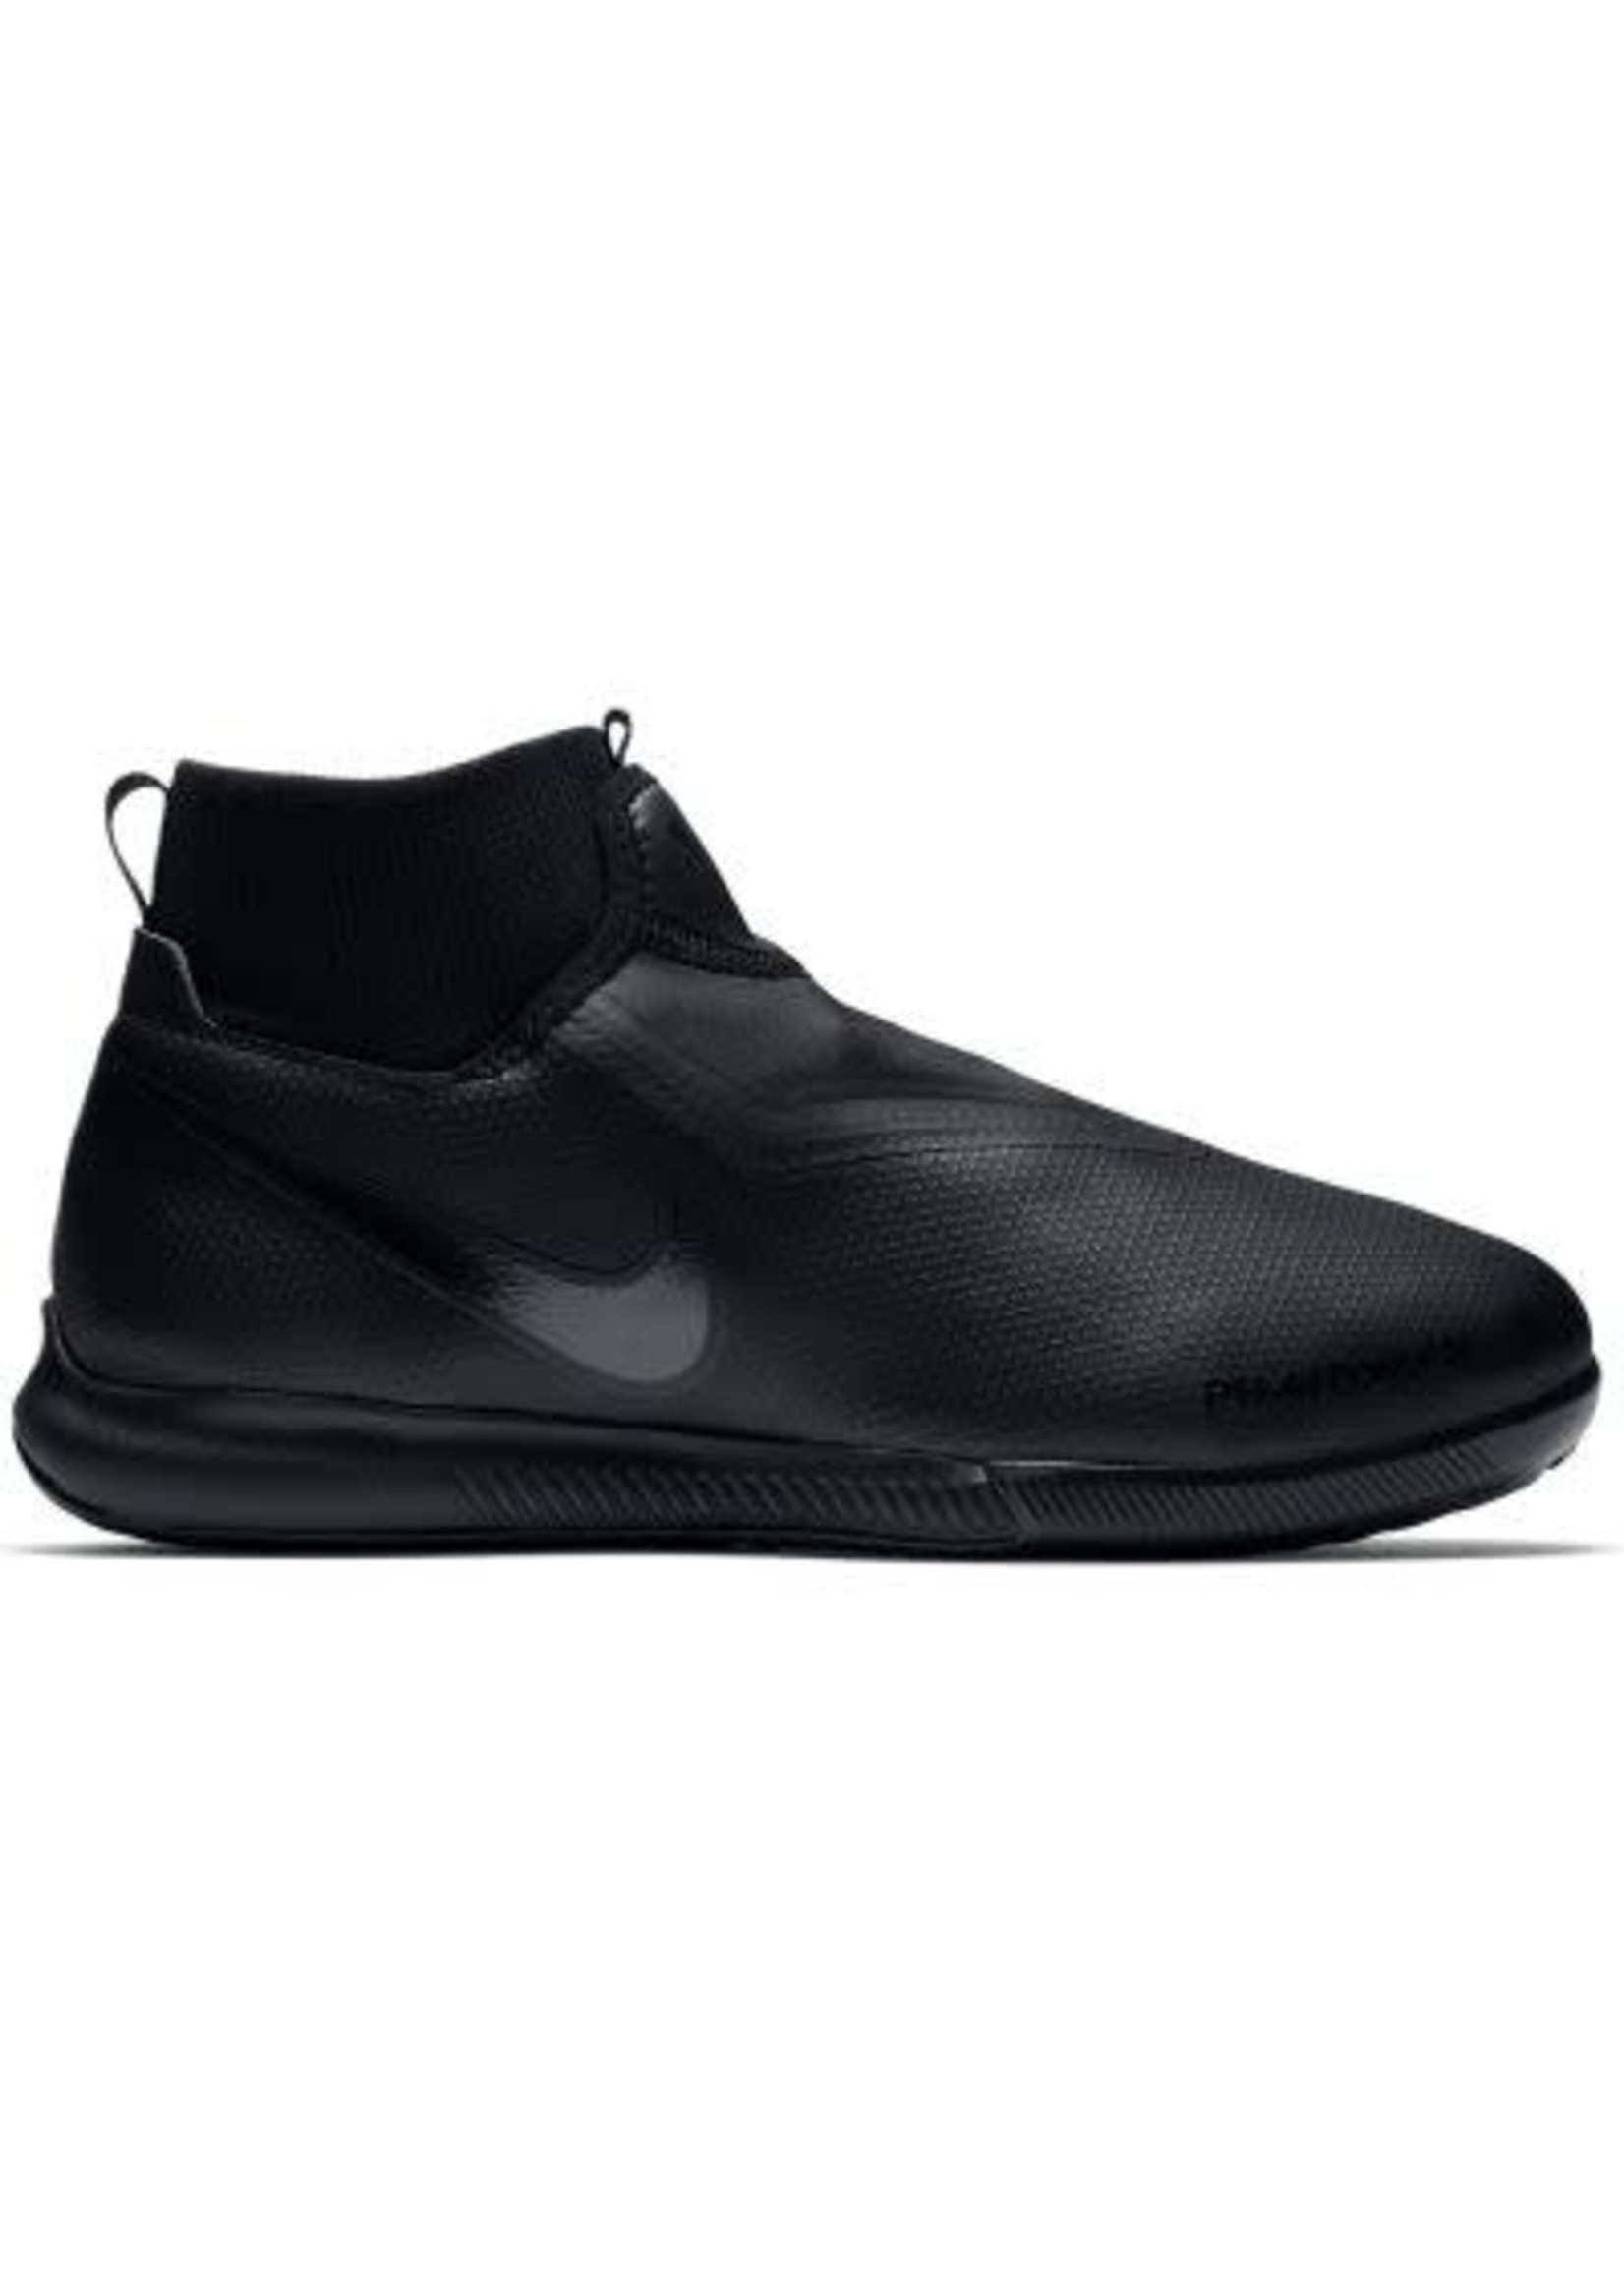 Nike Jr Phantom VSN Academy DF IC - Black/Black